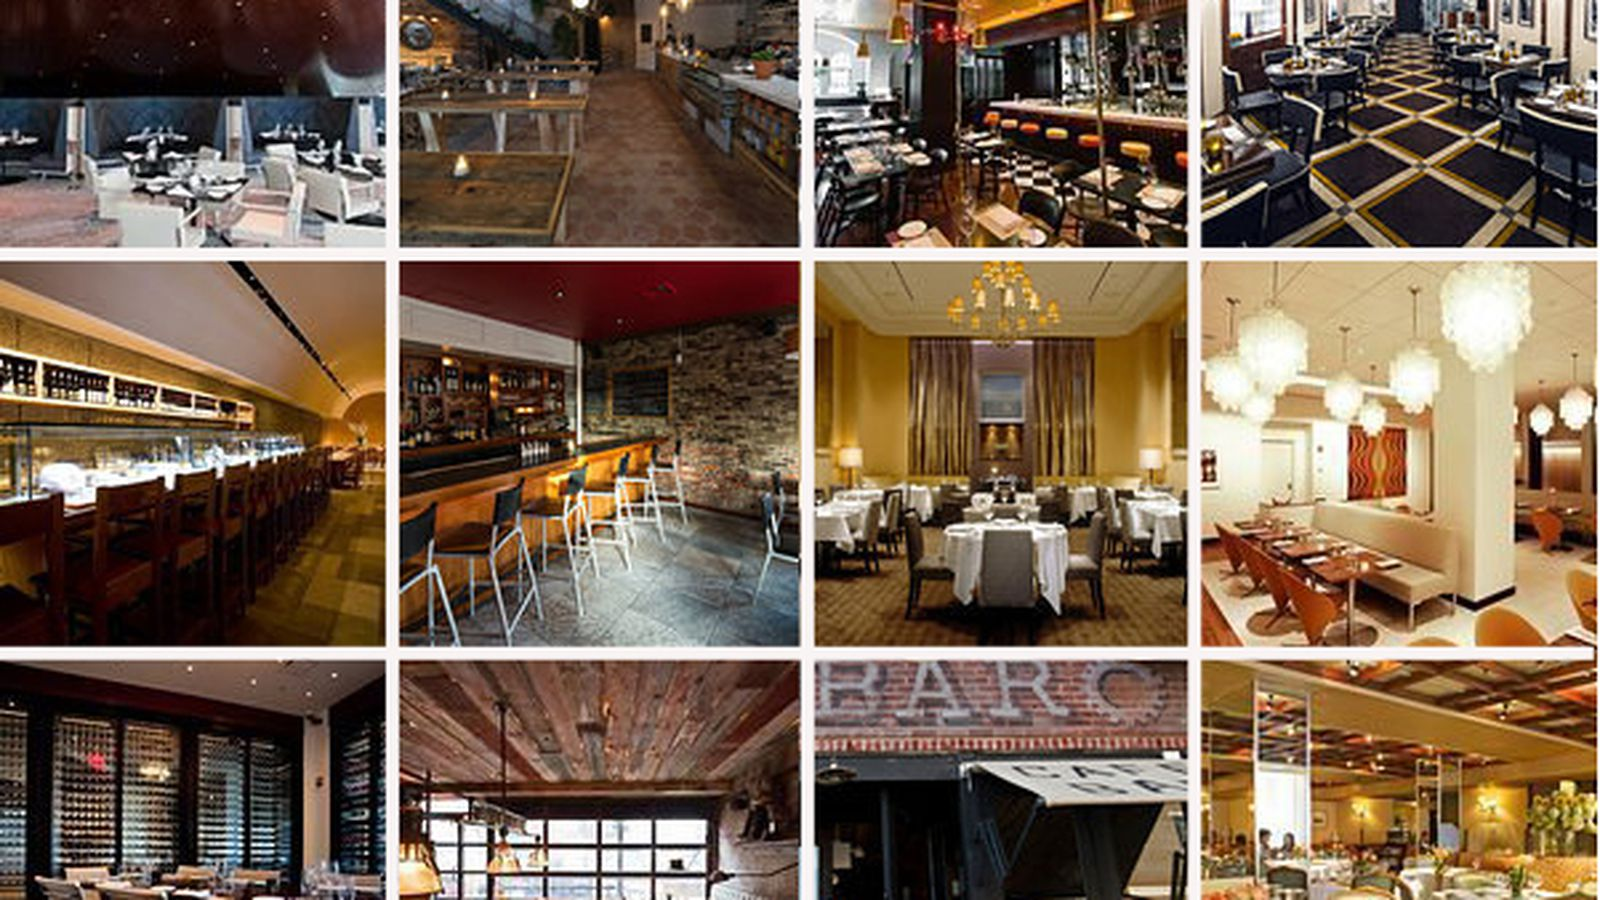 12 Solid Dining Options For Easter Sunday In Nyc Eater Ny